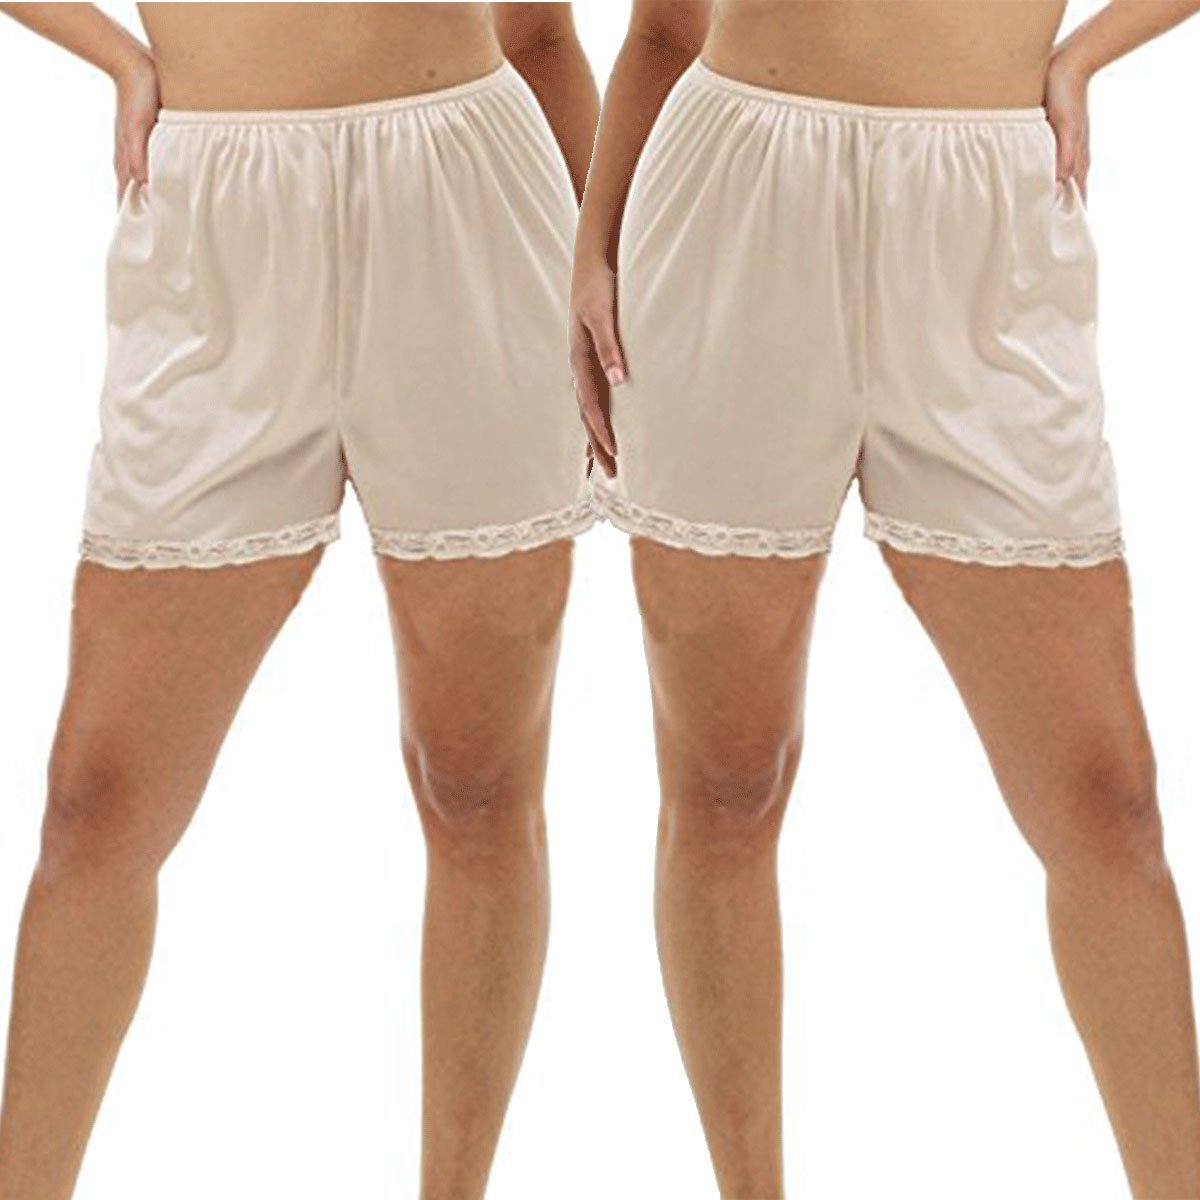 Under Moments Pettipants Cotton Culotte Bloomers Split Shorts 3inch Inseam 2 Pack UM-2639